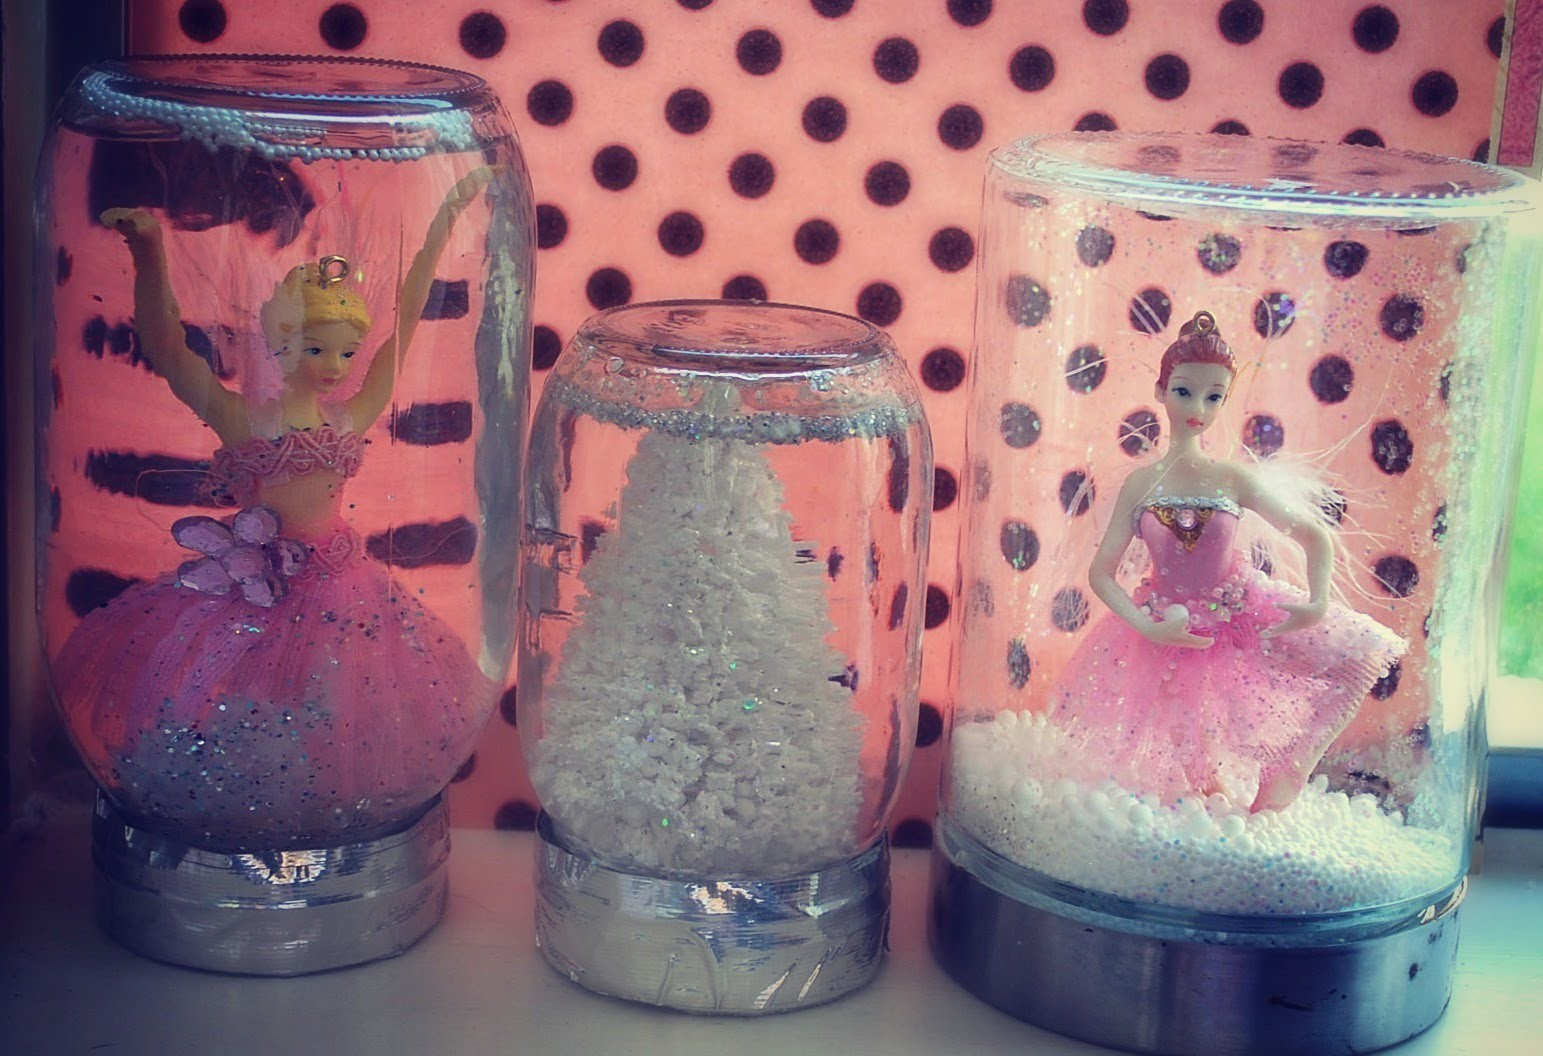 10 DIY Gifts : Gift idea 2: Homemade Jar Snowglobes! Pretty DIY snow globe!